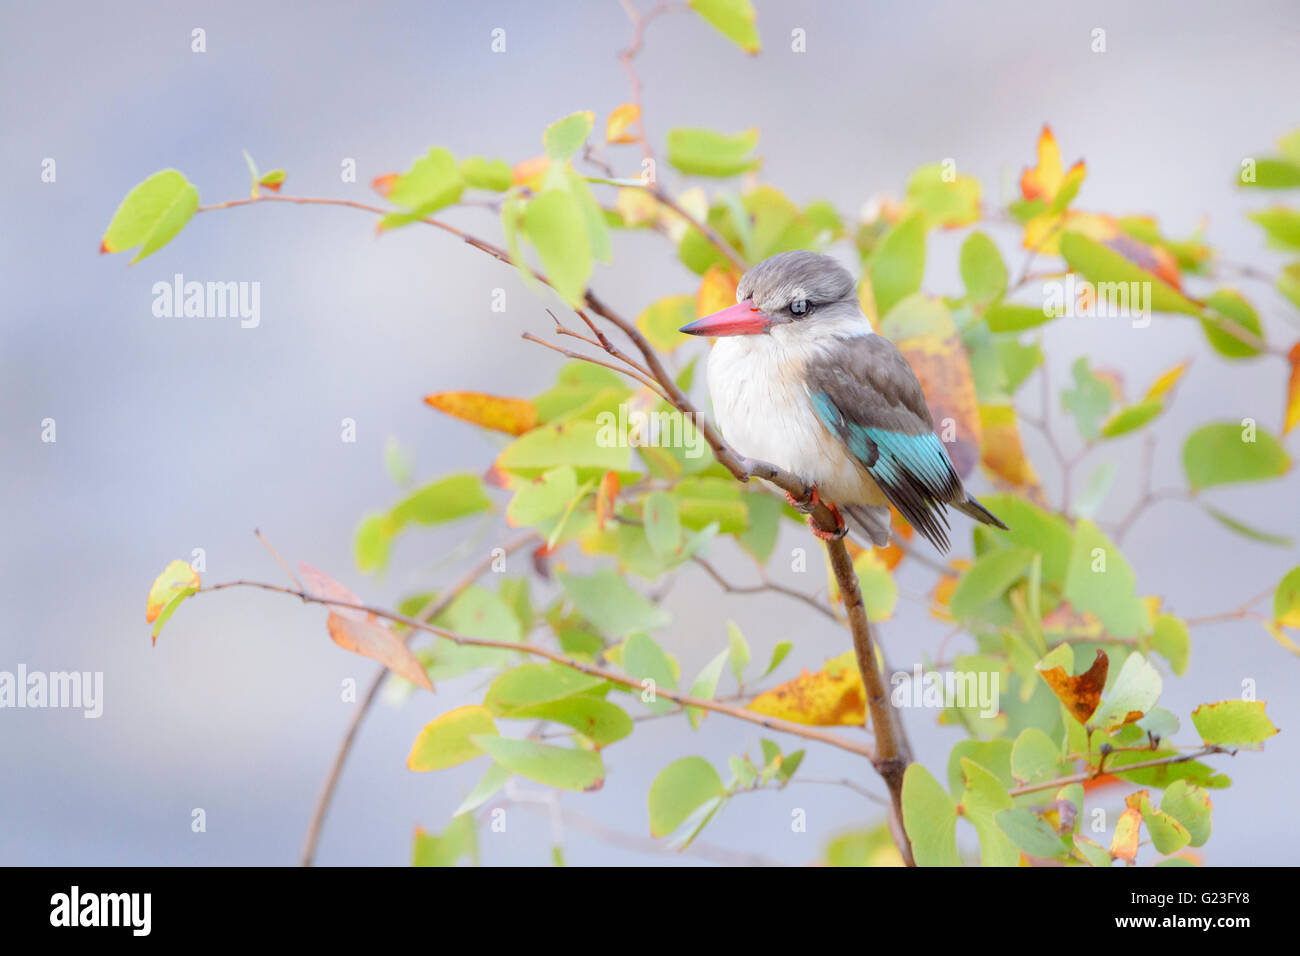 Brown-hooded kingfisher (Halcyon albiventris) on a twig between leaves, Kruger National Park, South Africa, Africa - Stock Image